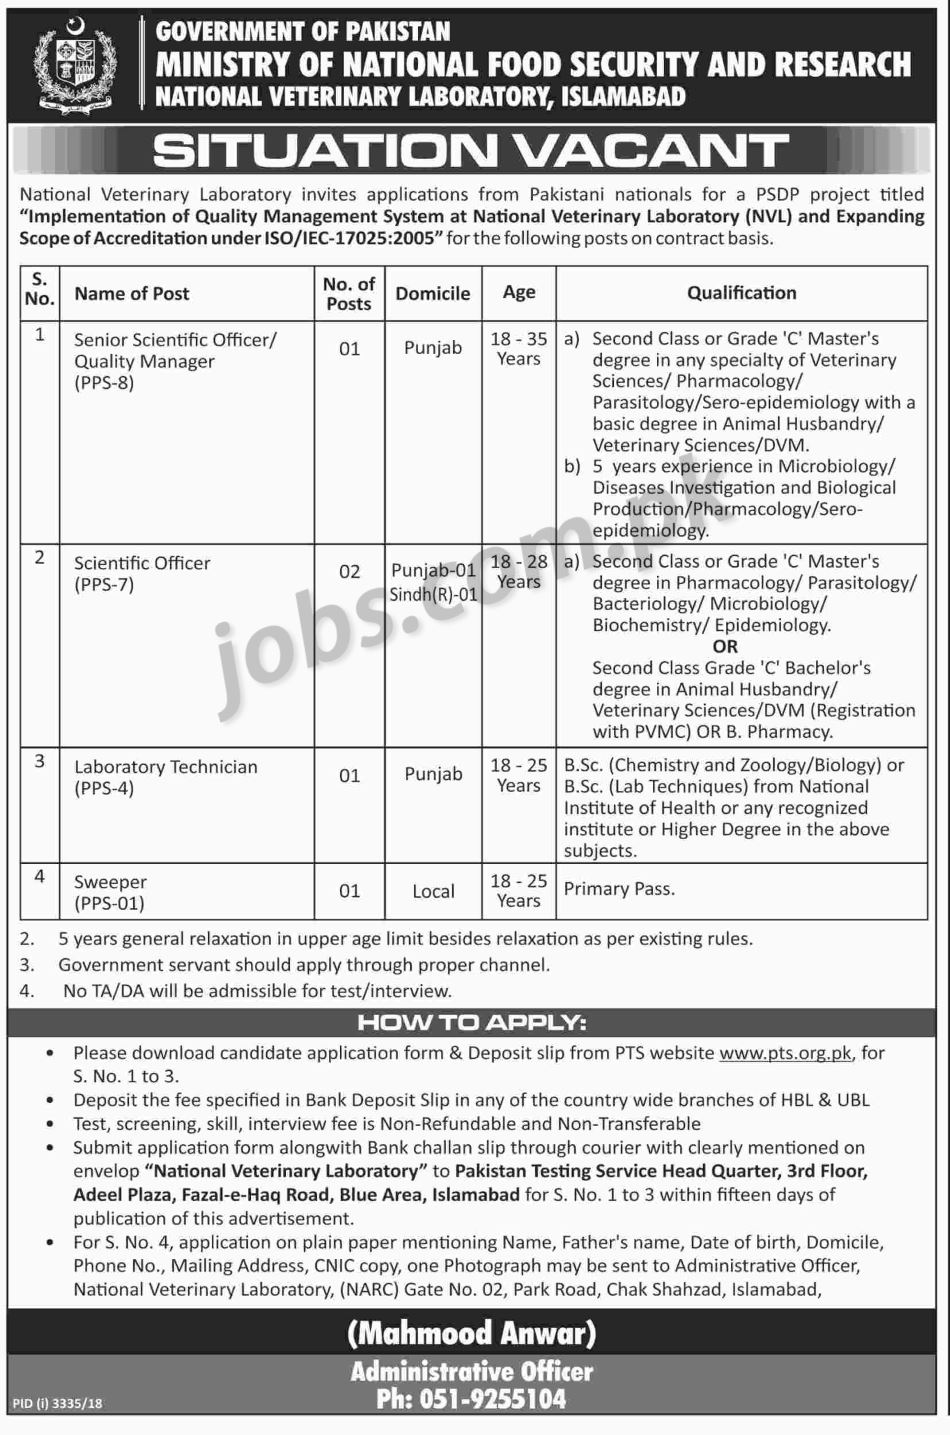 MNF-dw-pts Online Govt Job Form Submit on